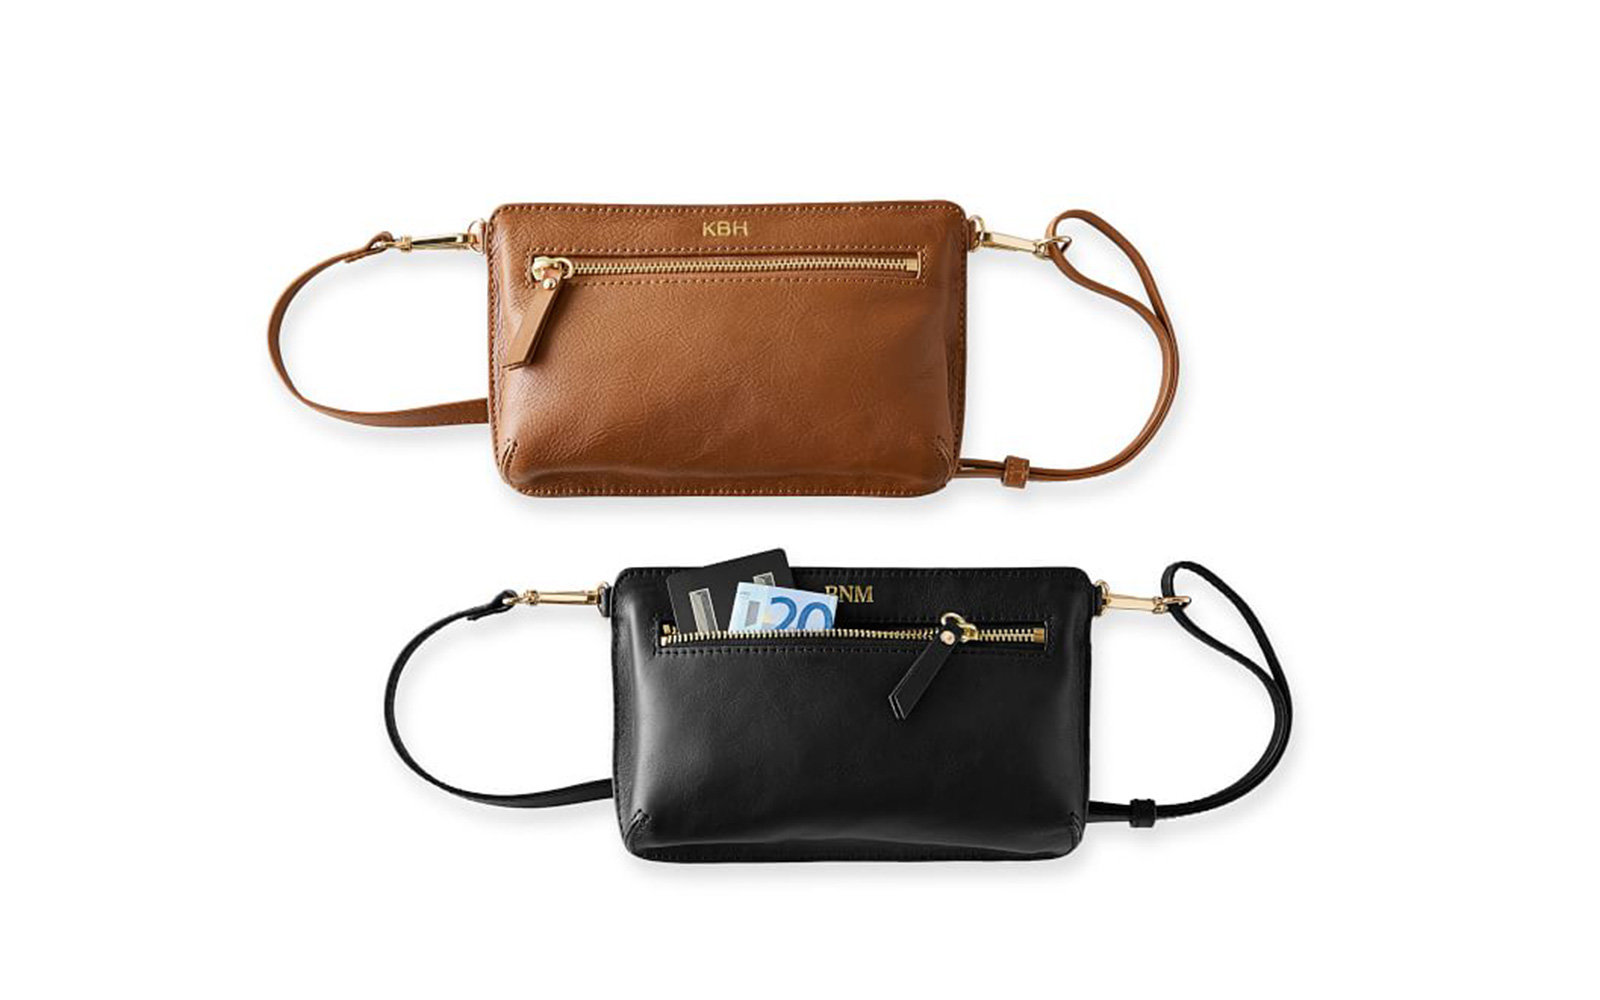 Cute Fanny Packs and Belt Bags for Stylish Travelers  1398cacd4d5c2